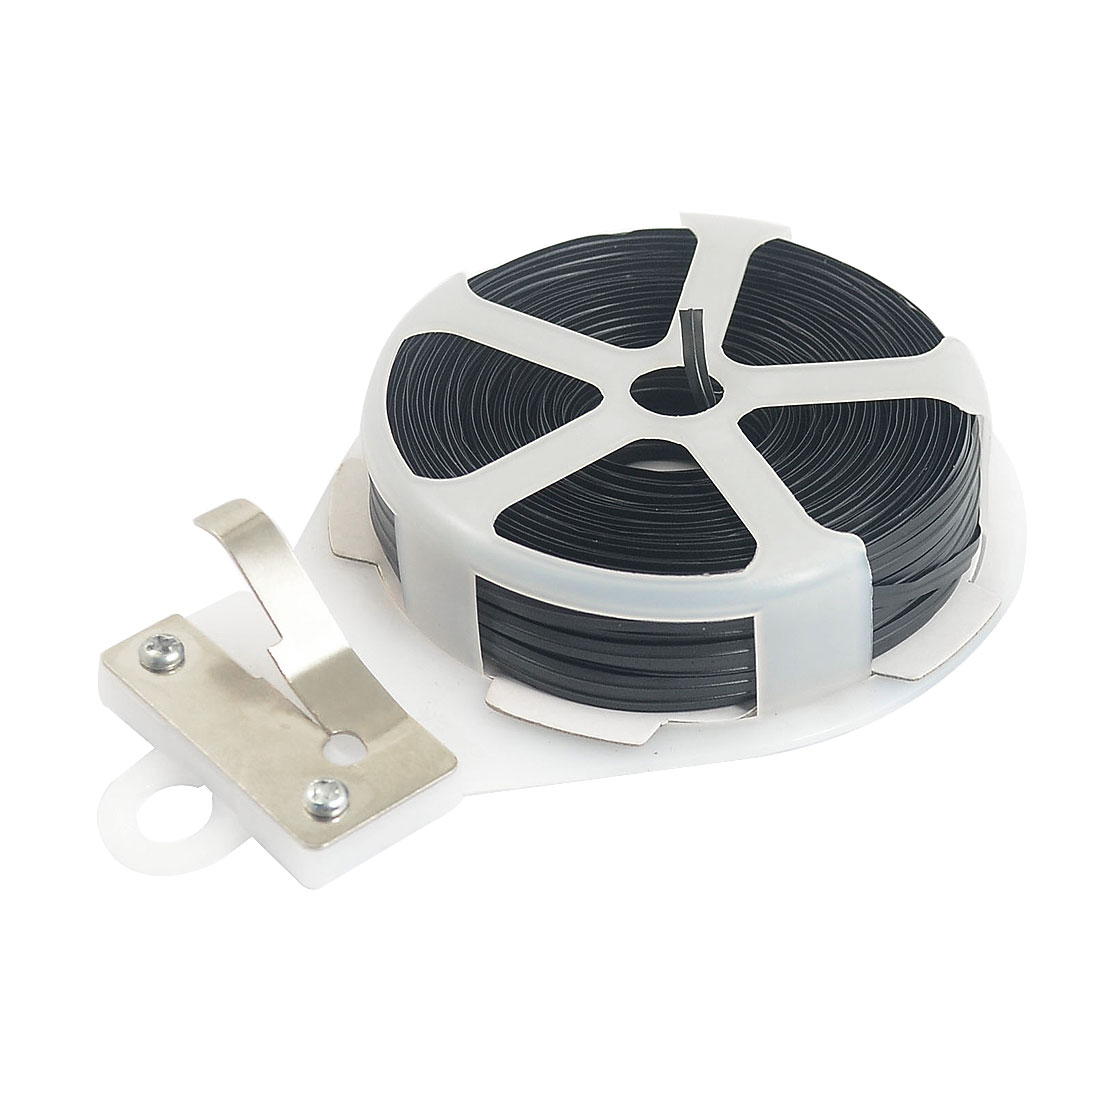 Twist Tie Roll Strapping String Tape Cutter 30m for Gardening Packing Crafts